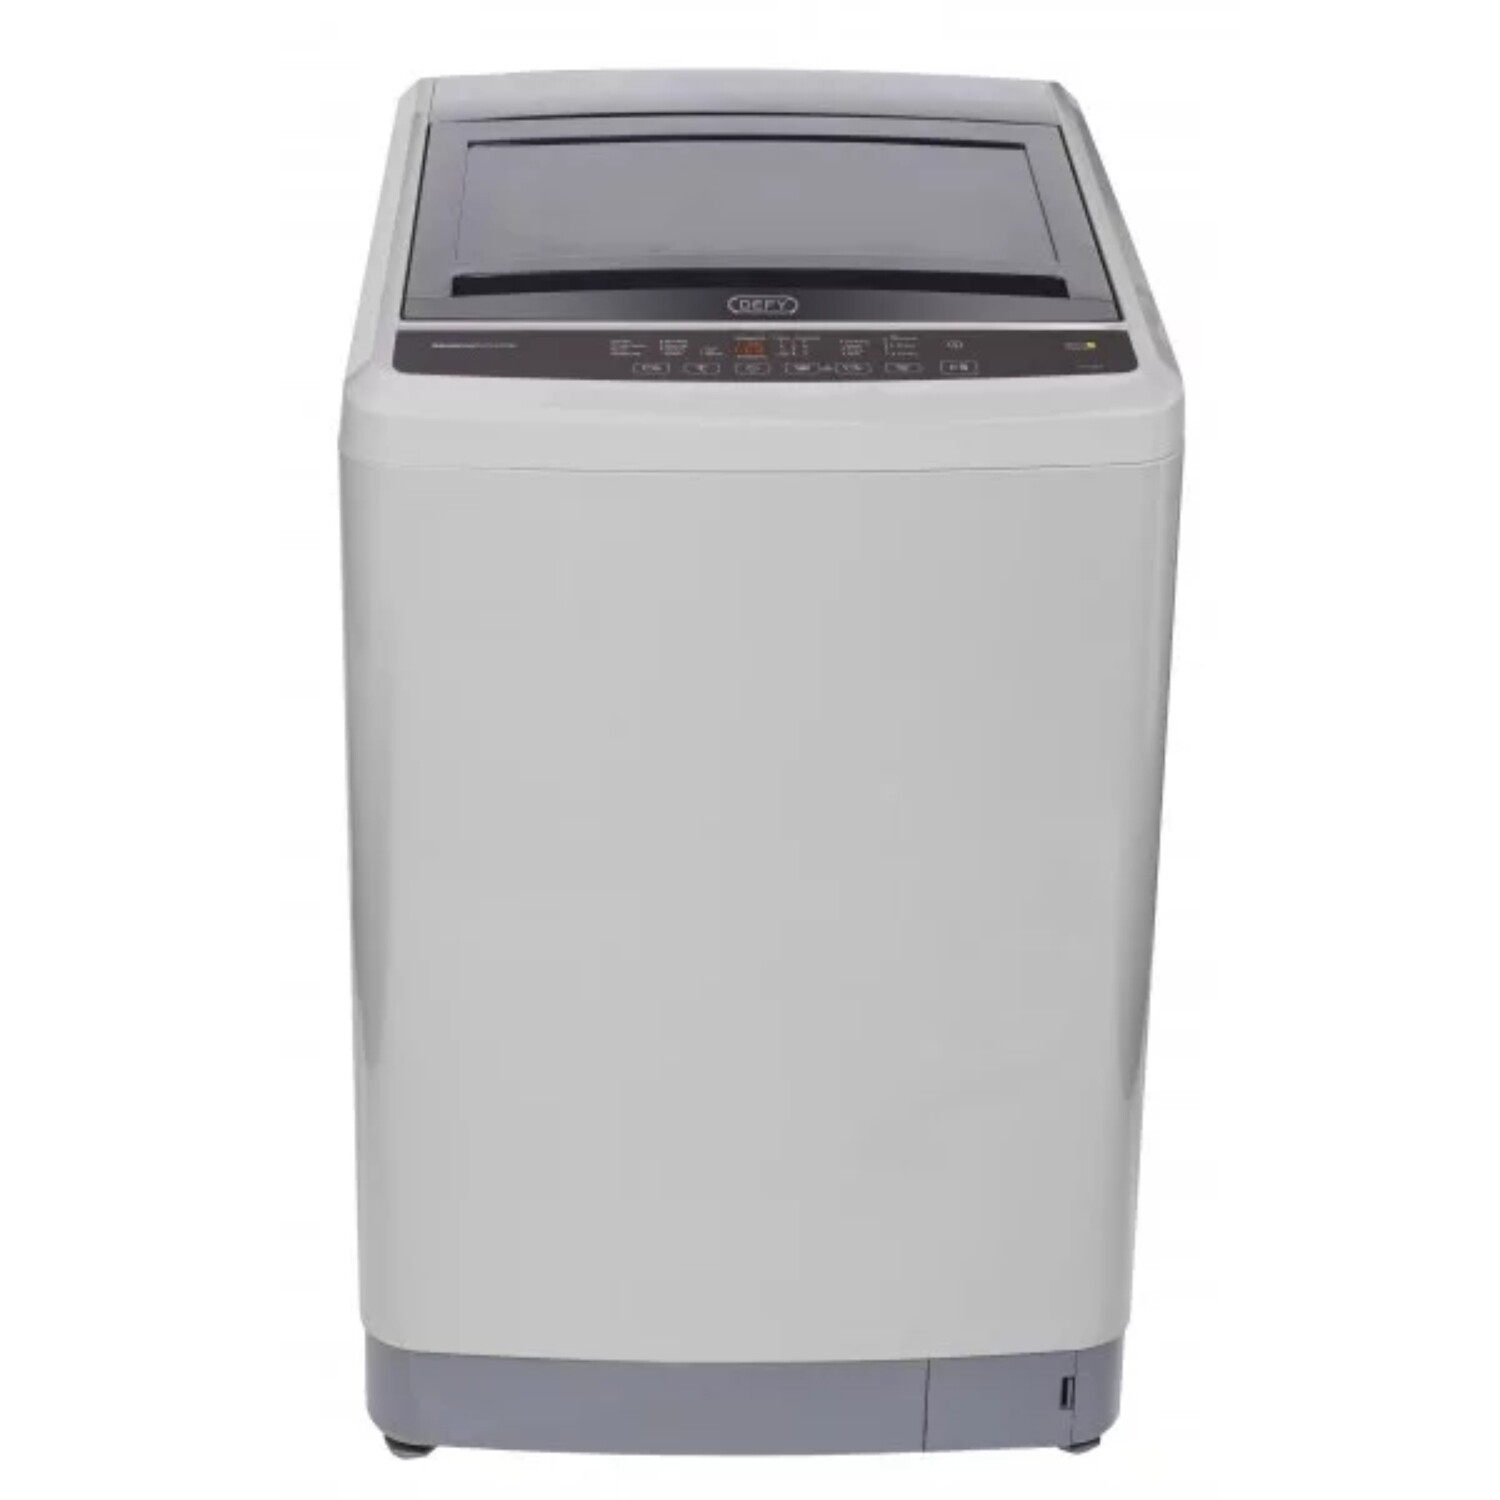 Defy DTL149 13kg Top Loader Washing Machine